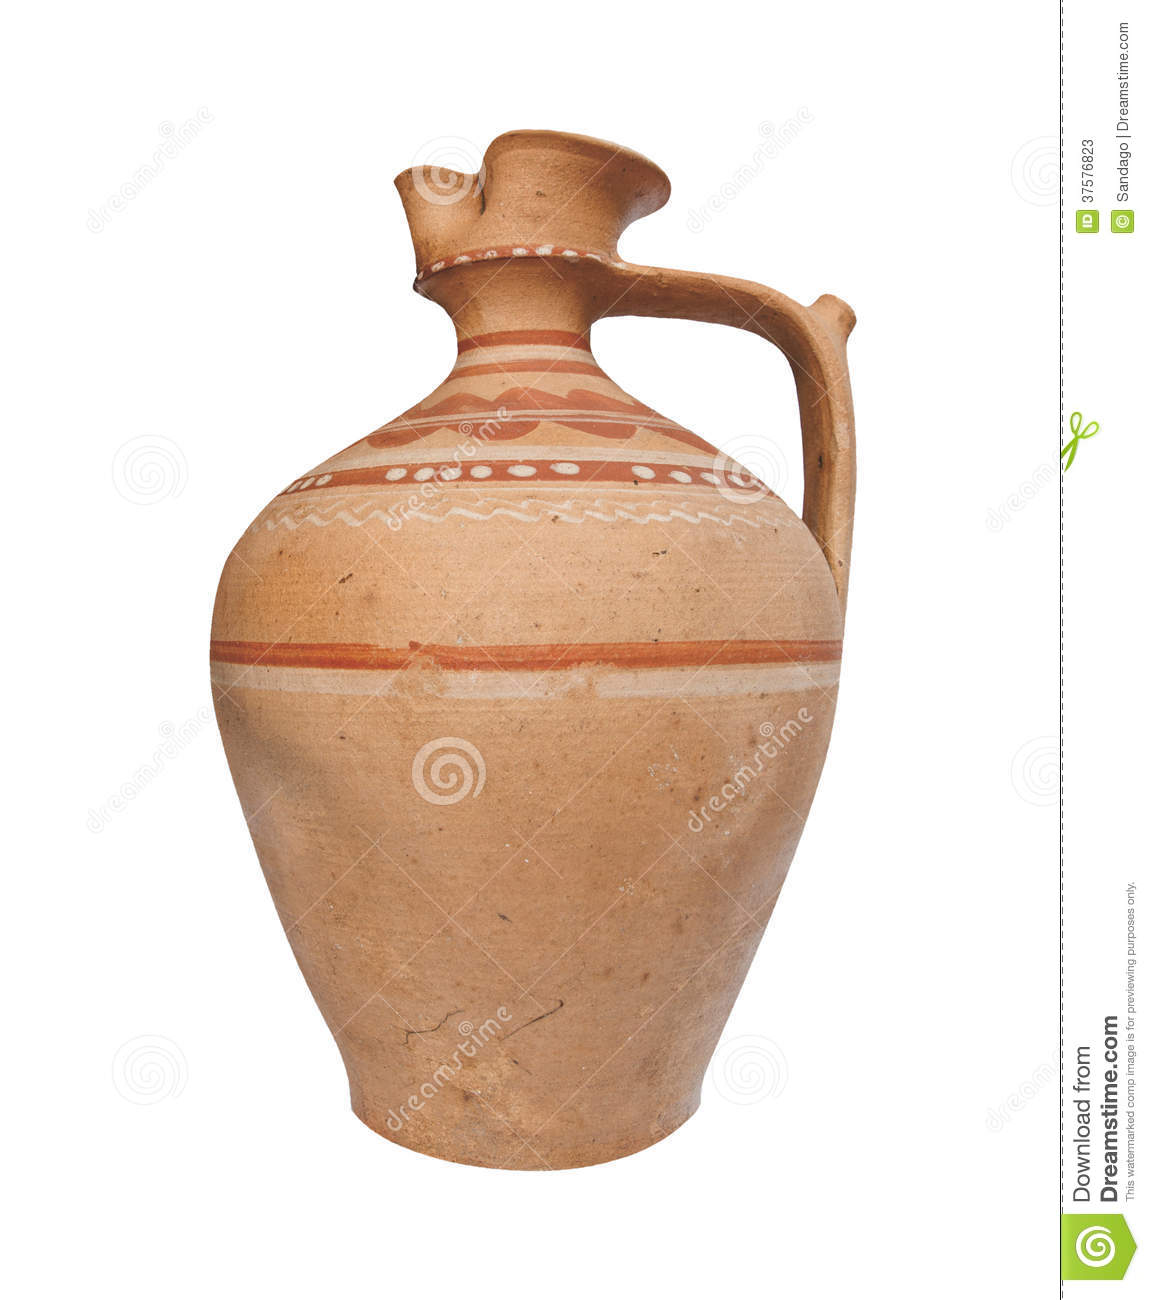 Water jug stock image  Image of romanian, clay, outline